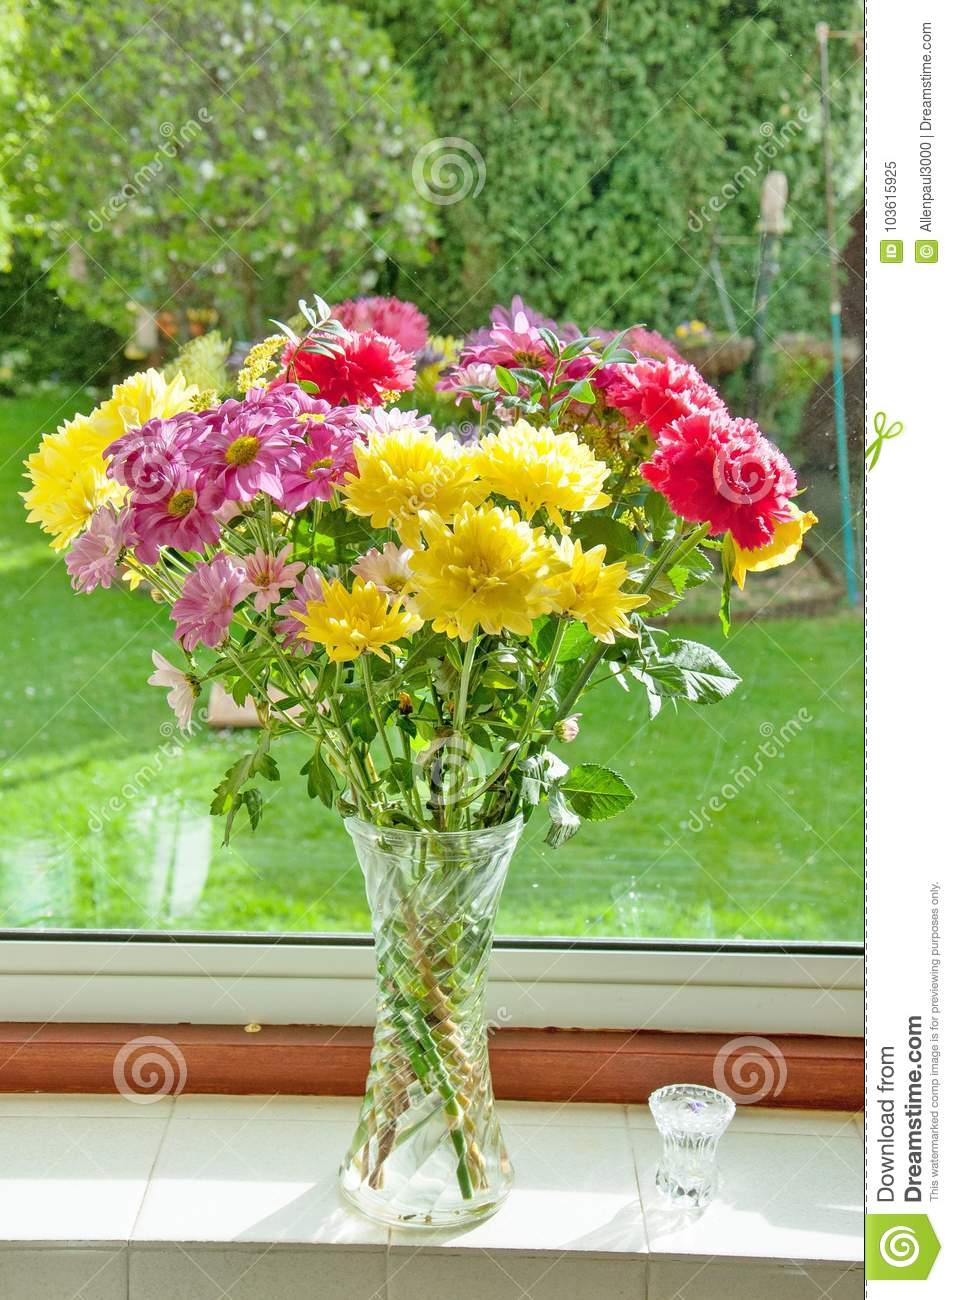 Beautiful Flowers In A Vase Stock Image Image Of Vase Colorful